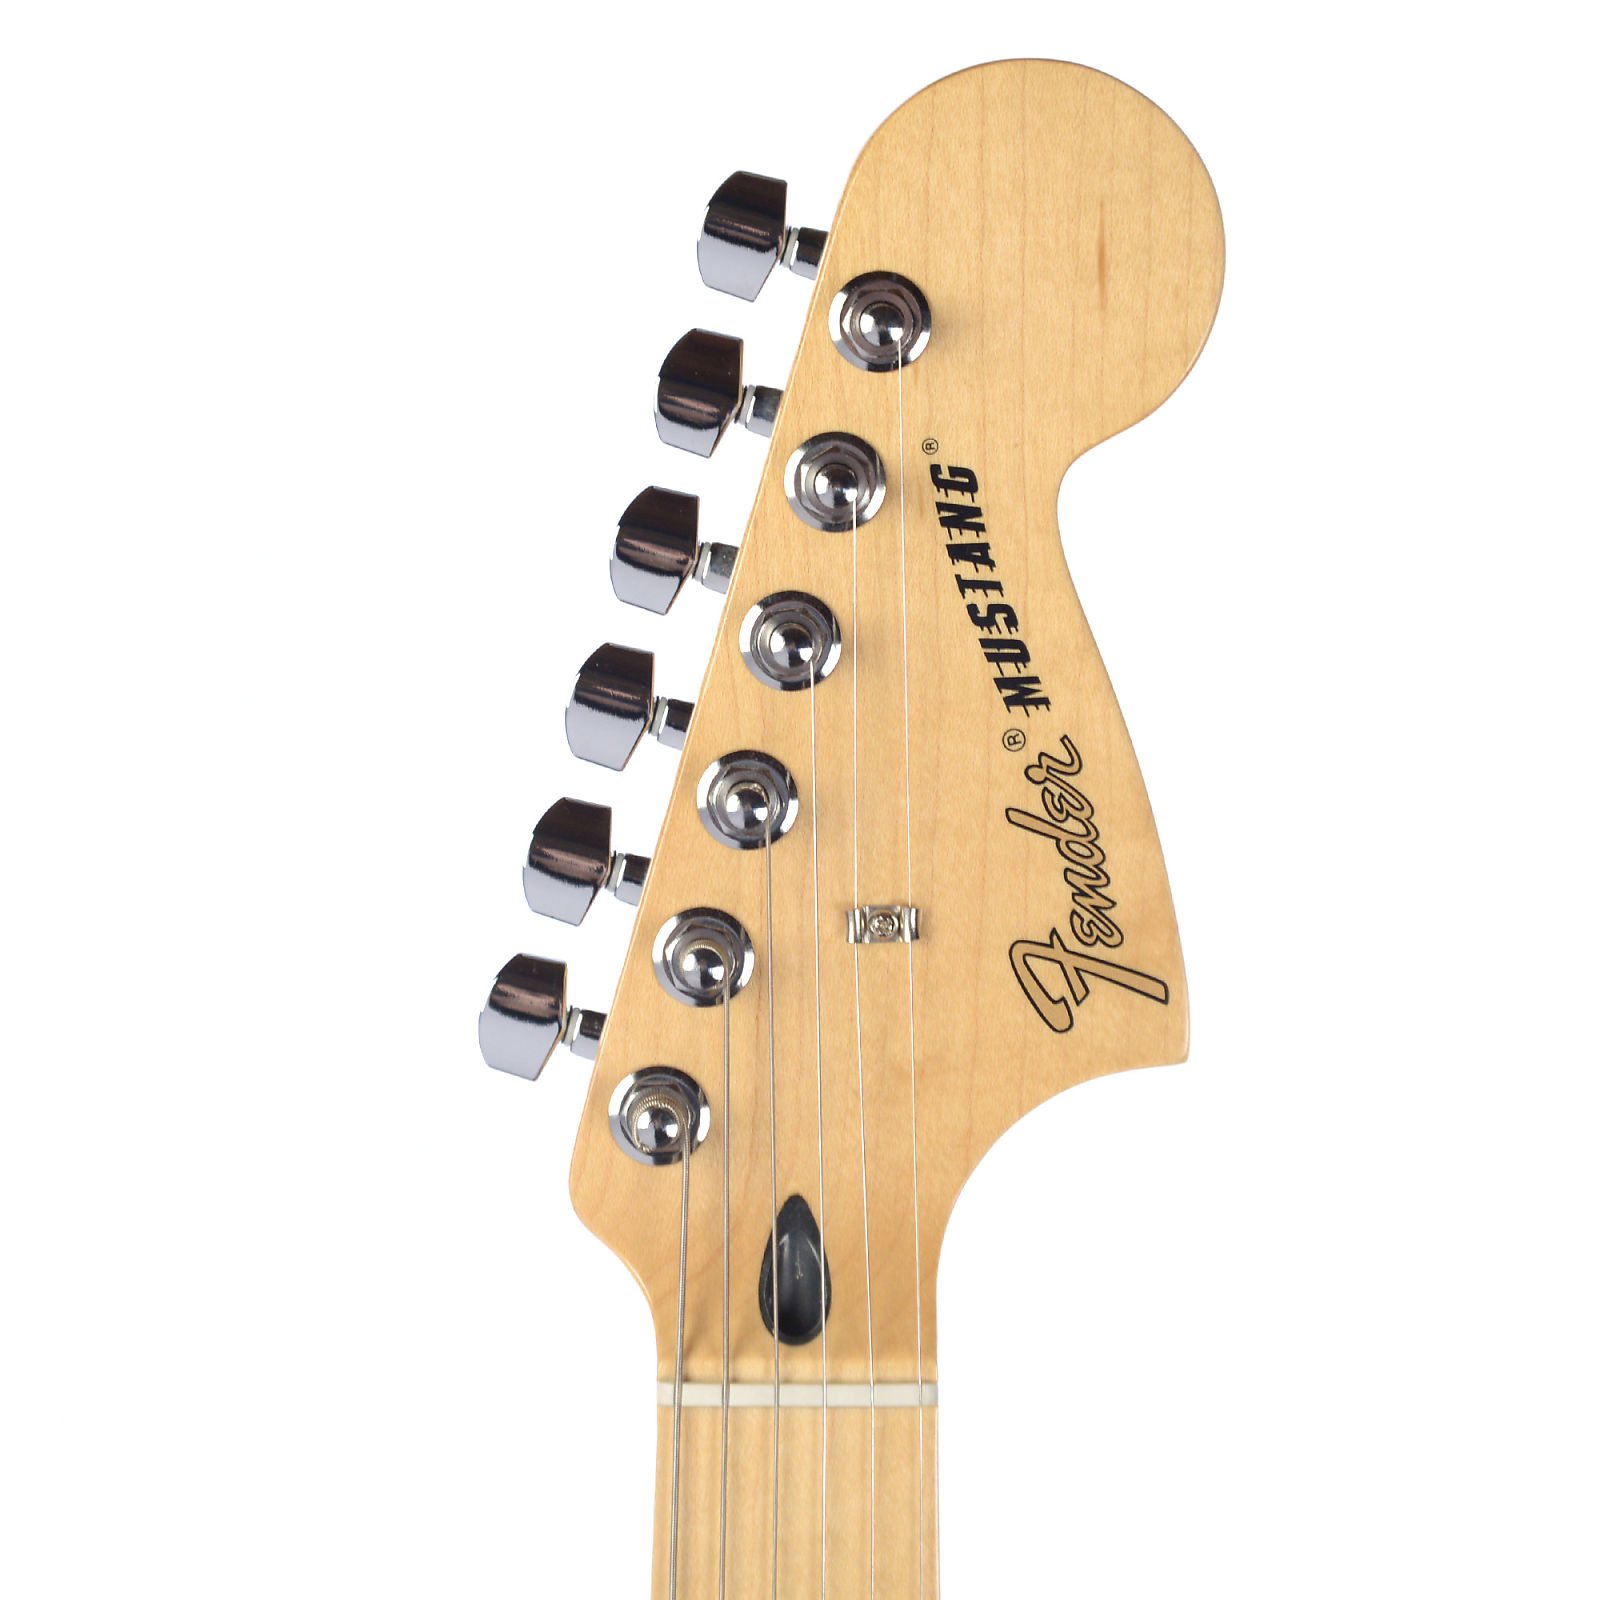 Fender Offset Series Mustang Faded Mocha FSR Limited Edition (CME Exclusive) Pre-Order